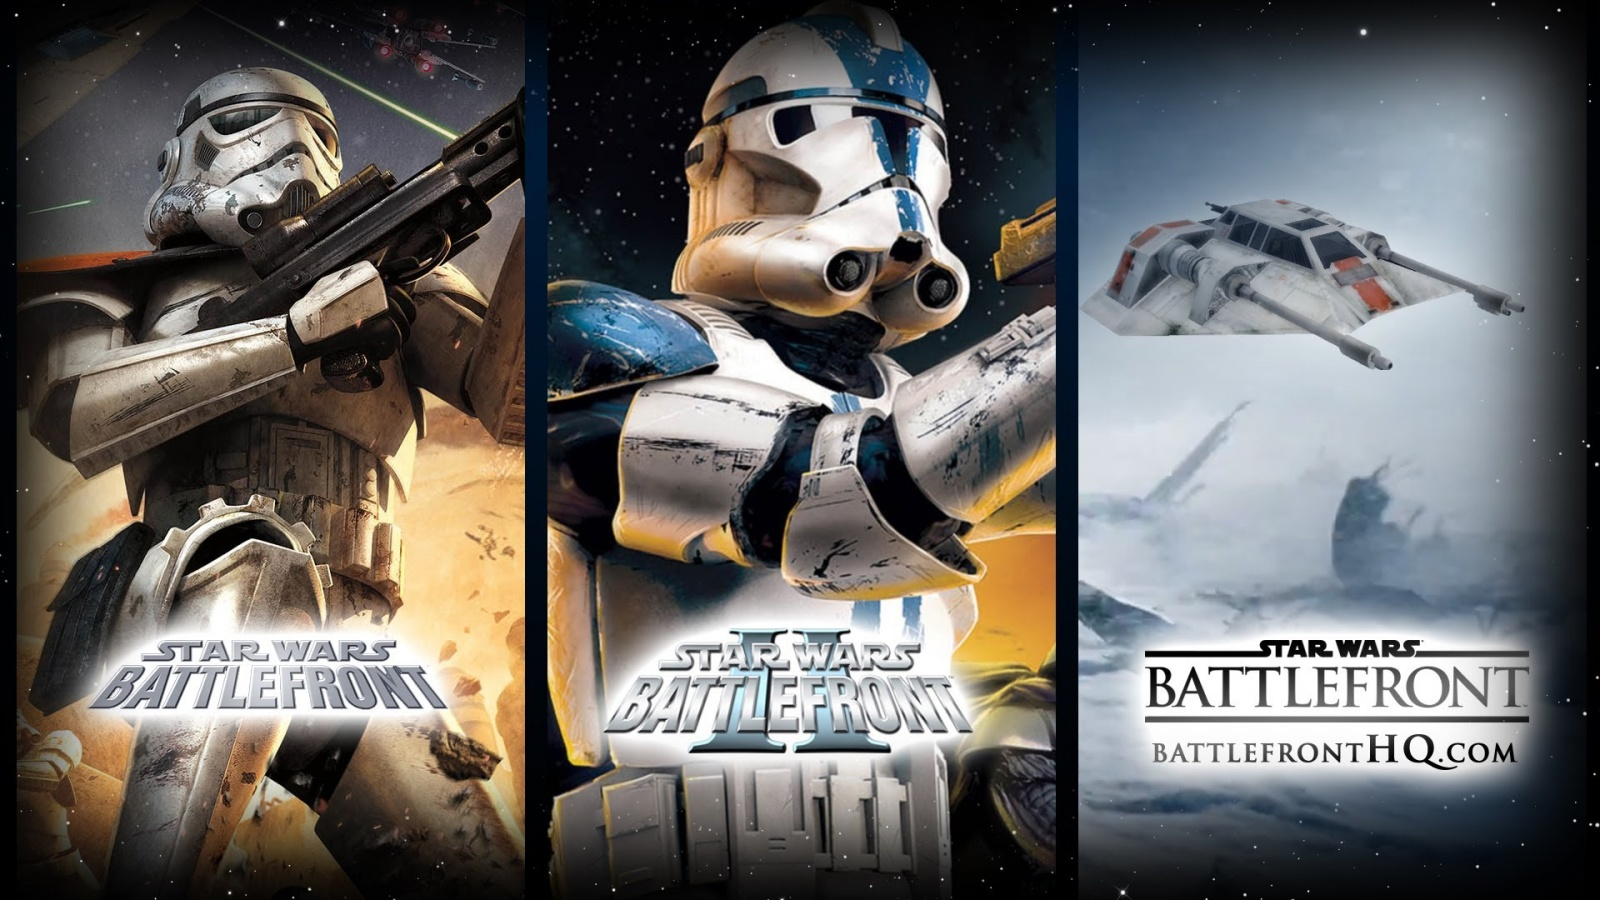 Star Wars Battlefront I, II, III: История серии Star Wars: Battlefront